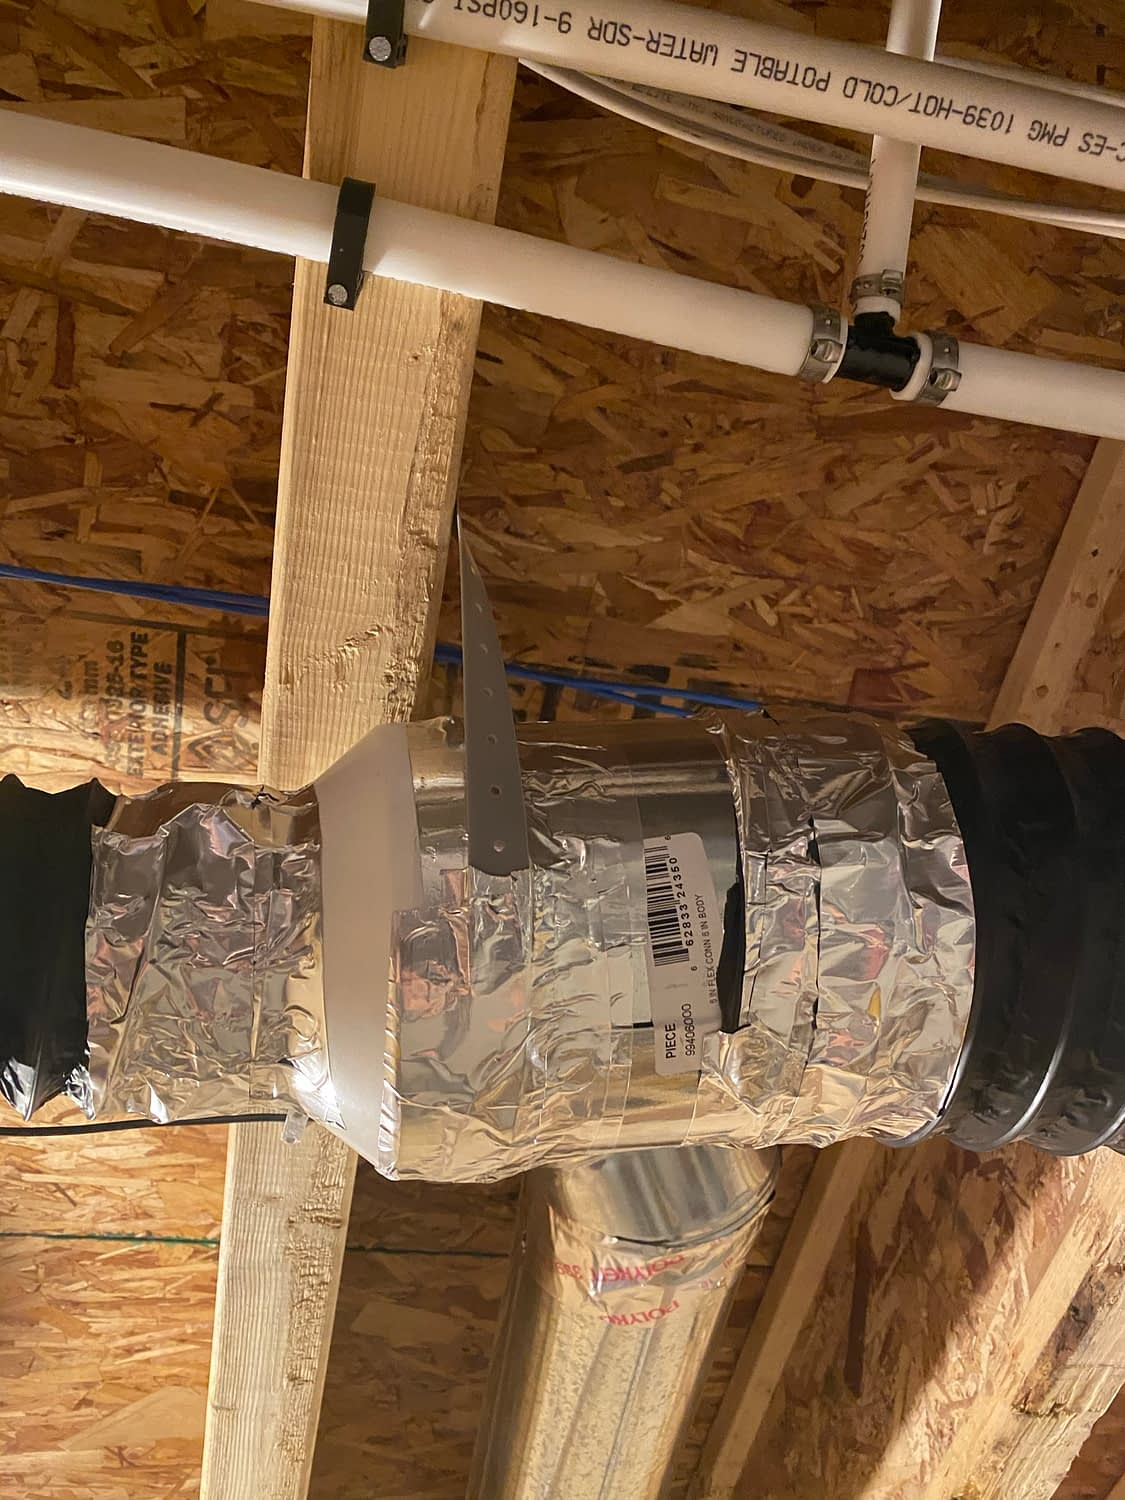 4-inch flex duct connected to adapter